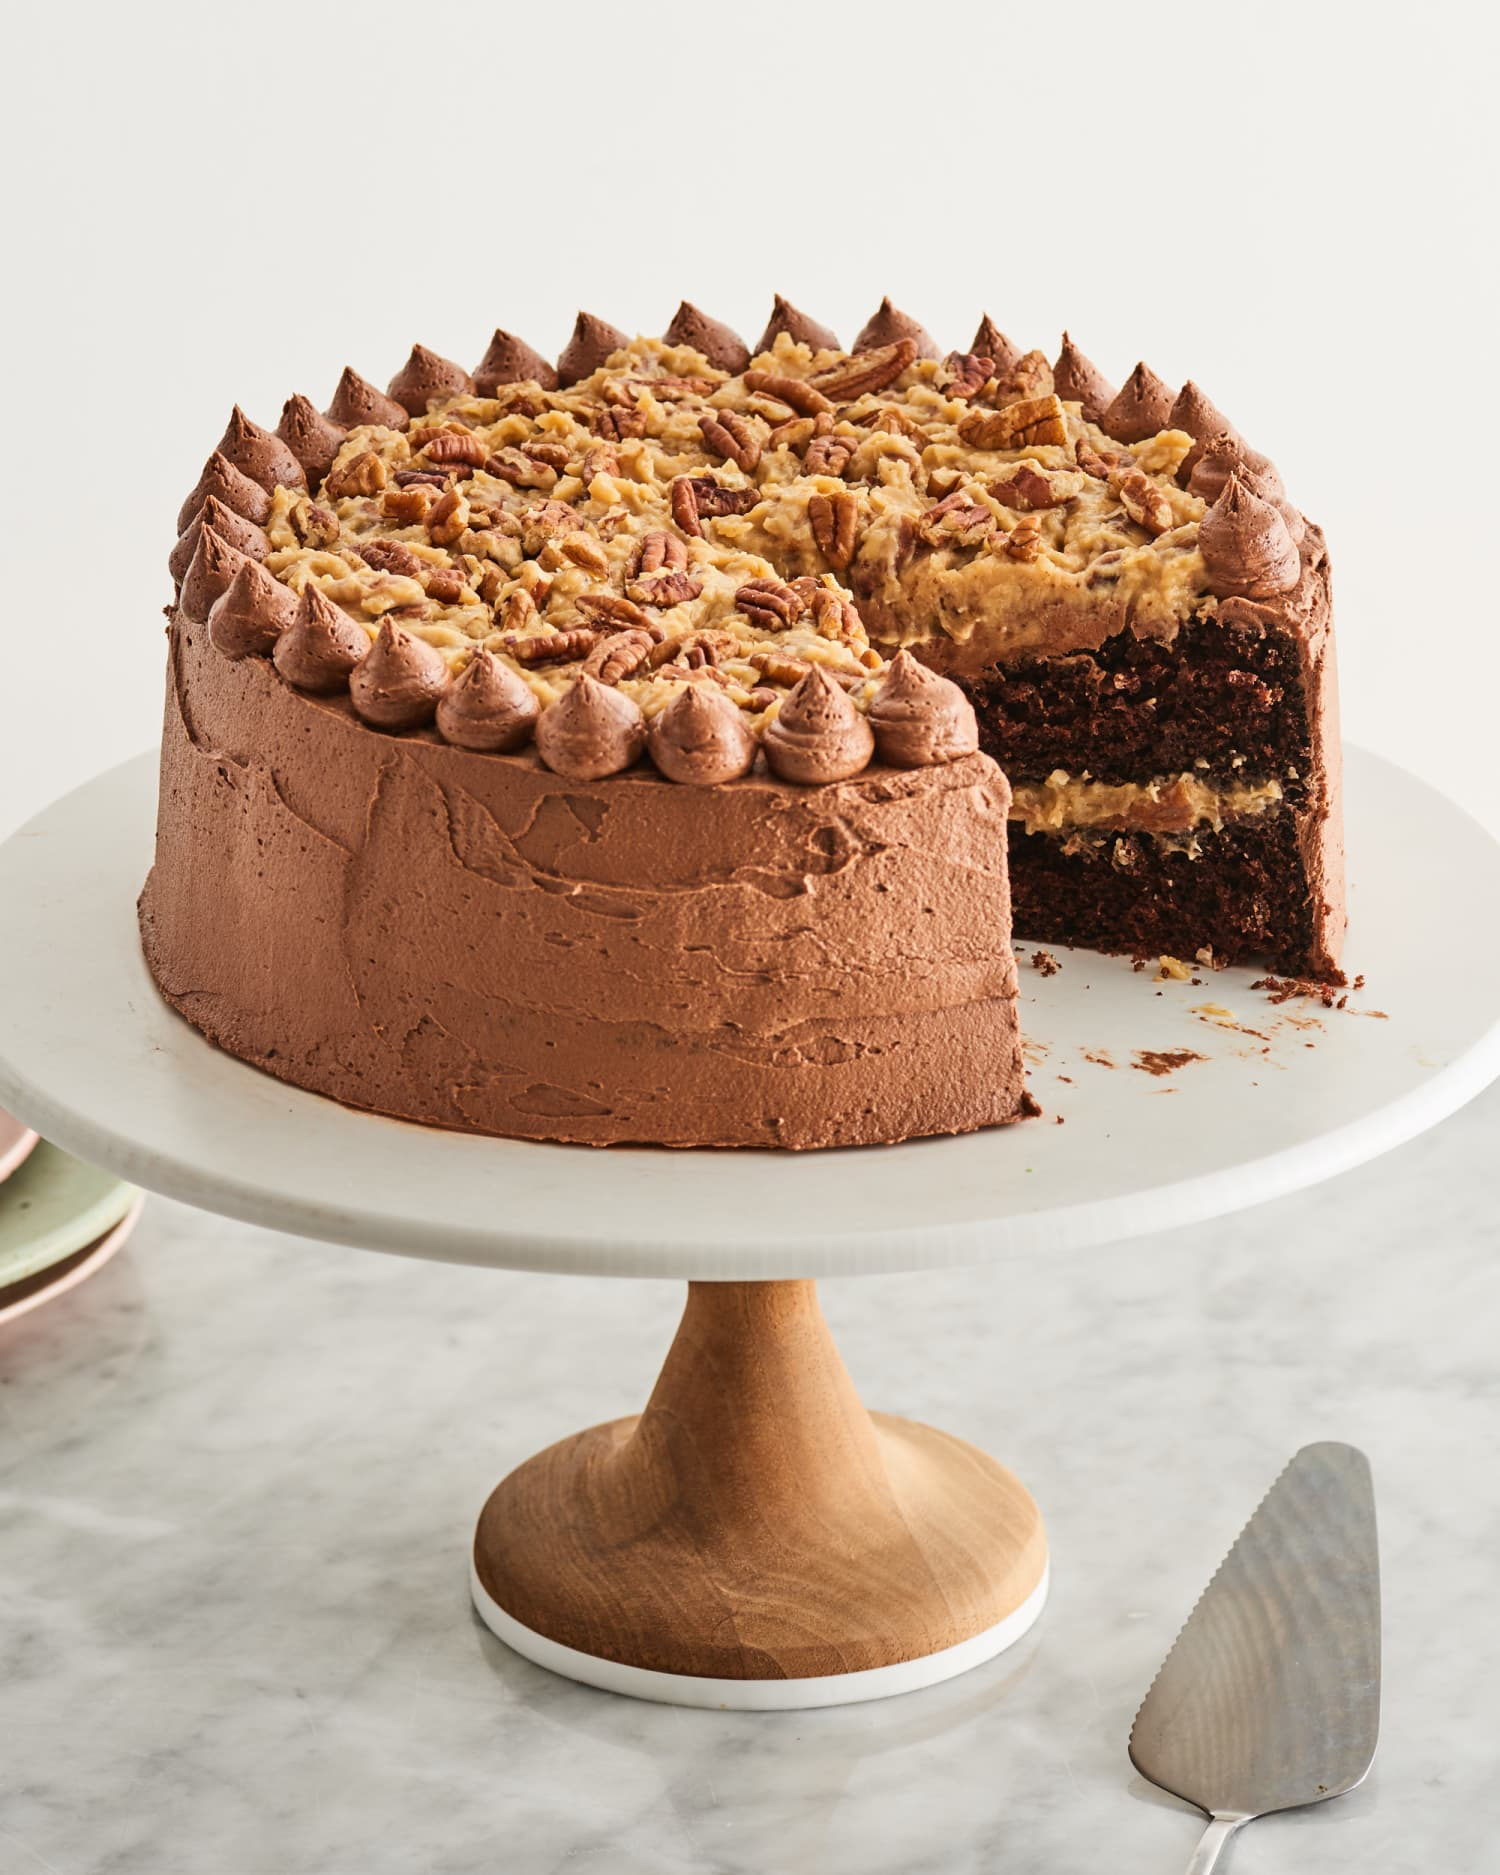 How to Make the Best-Ever German Chocolate Cake